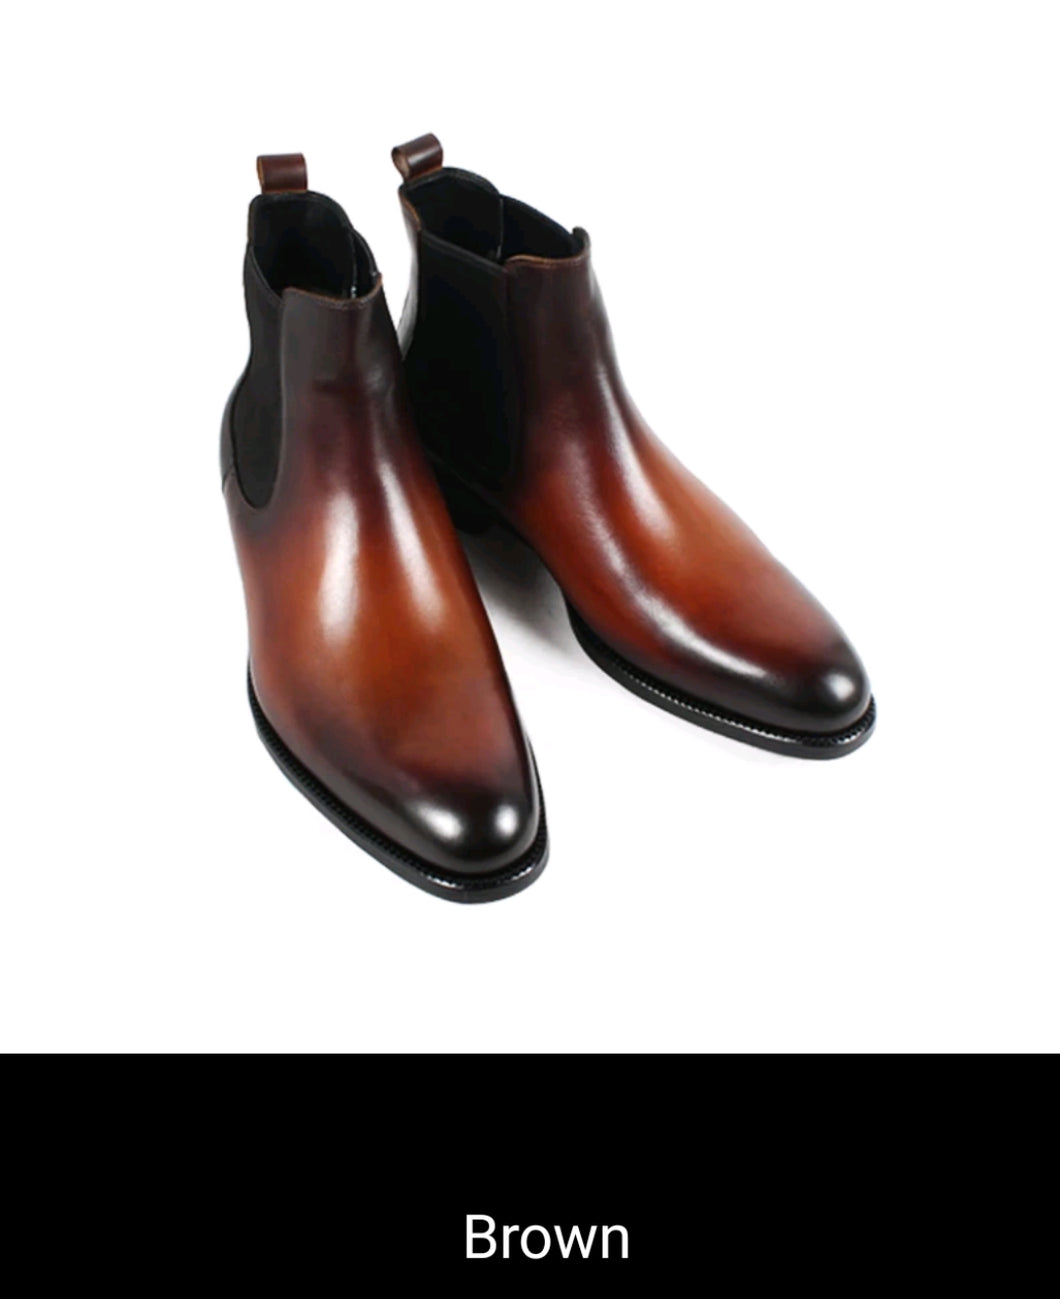 men's boots & dress shoes Handmade Vintage Dress Boot Classic slip on boots.